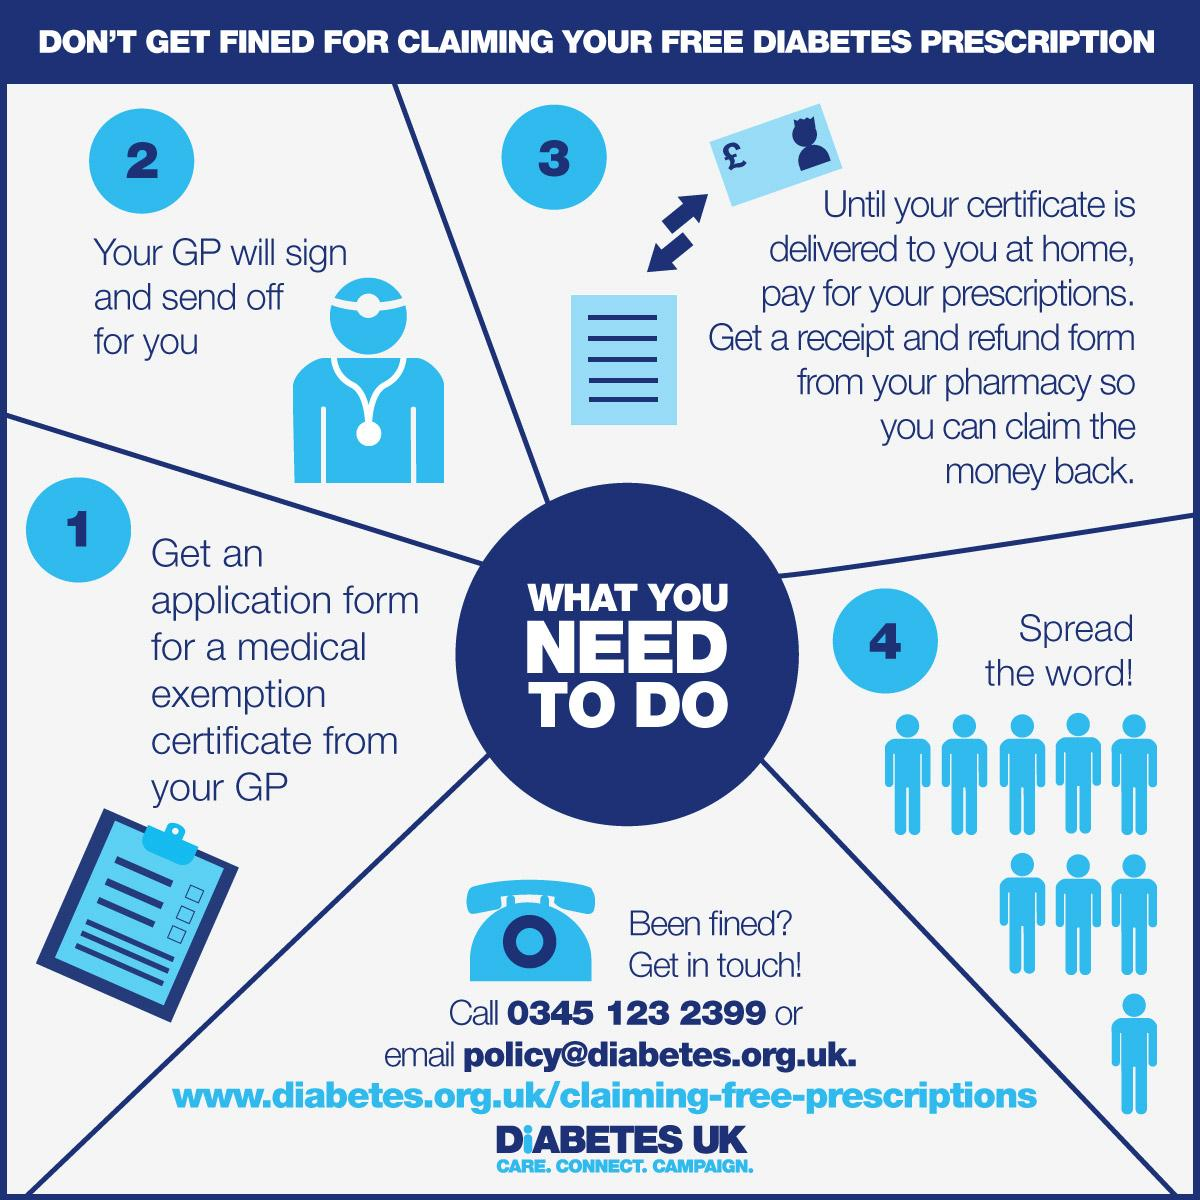 Diabetes uk on twitter got your medical exemption certificate if diabetes uk on twitter got your medical exemption certificate if youre in england aged 18 60 use meds for your diabetes you need one altavistaventures Image collections